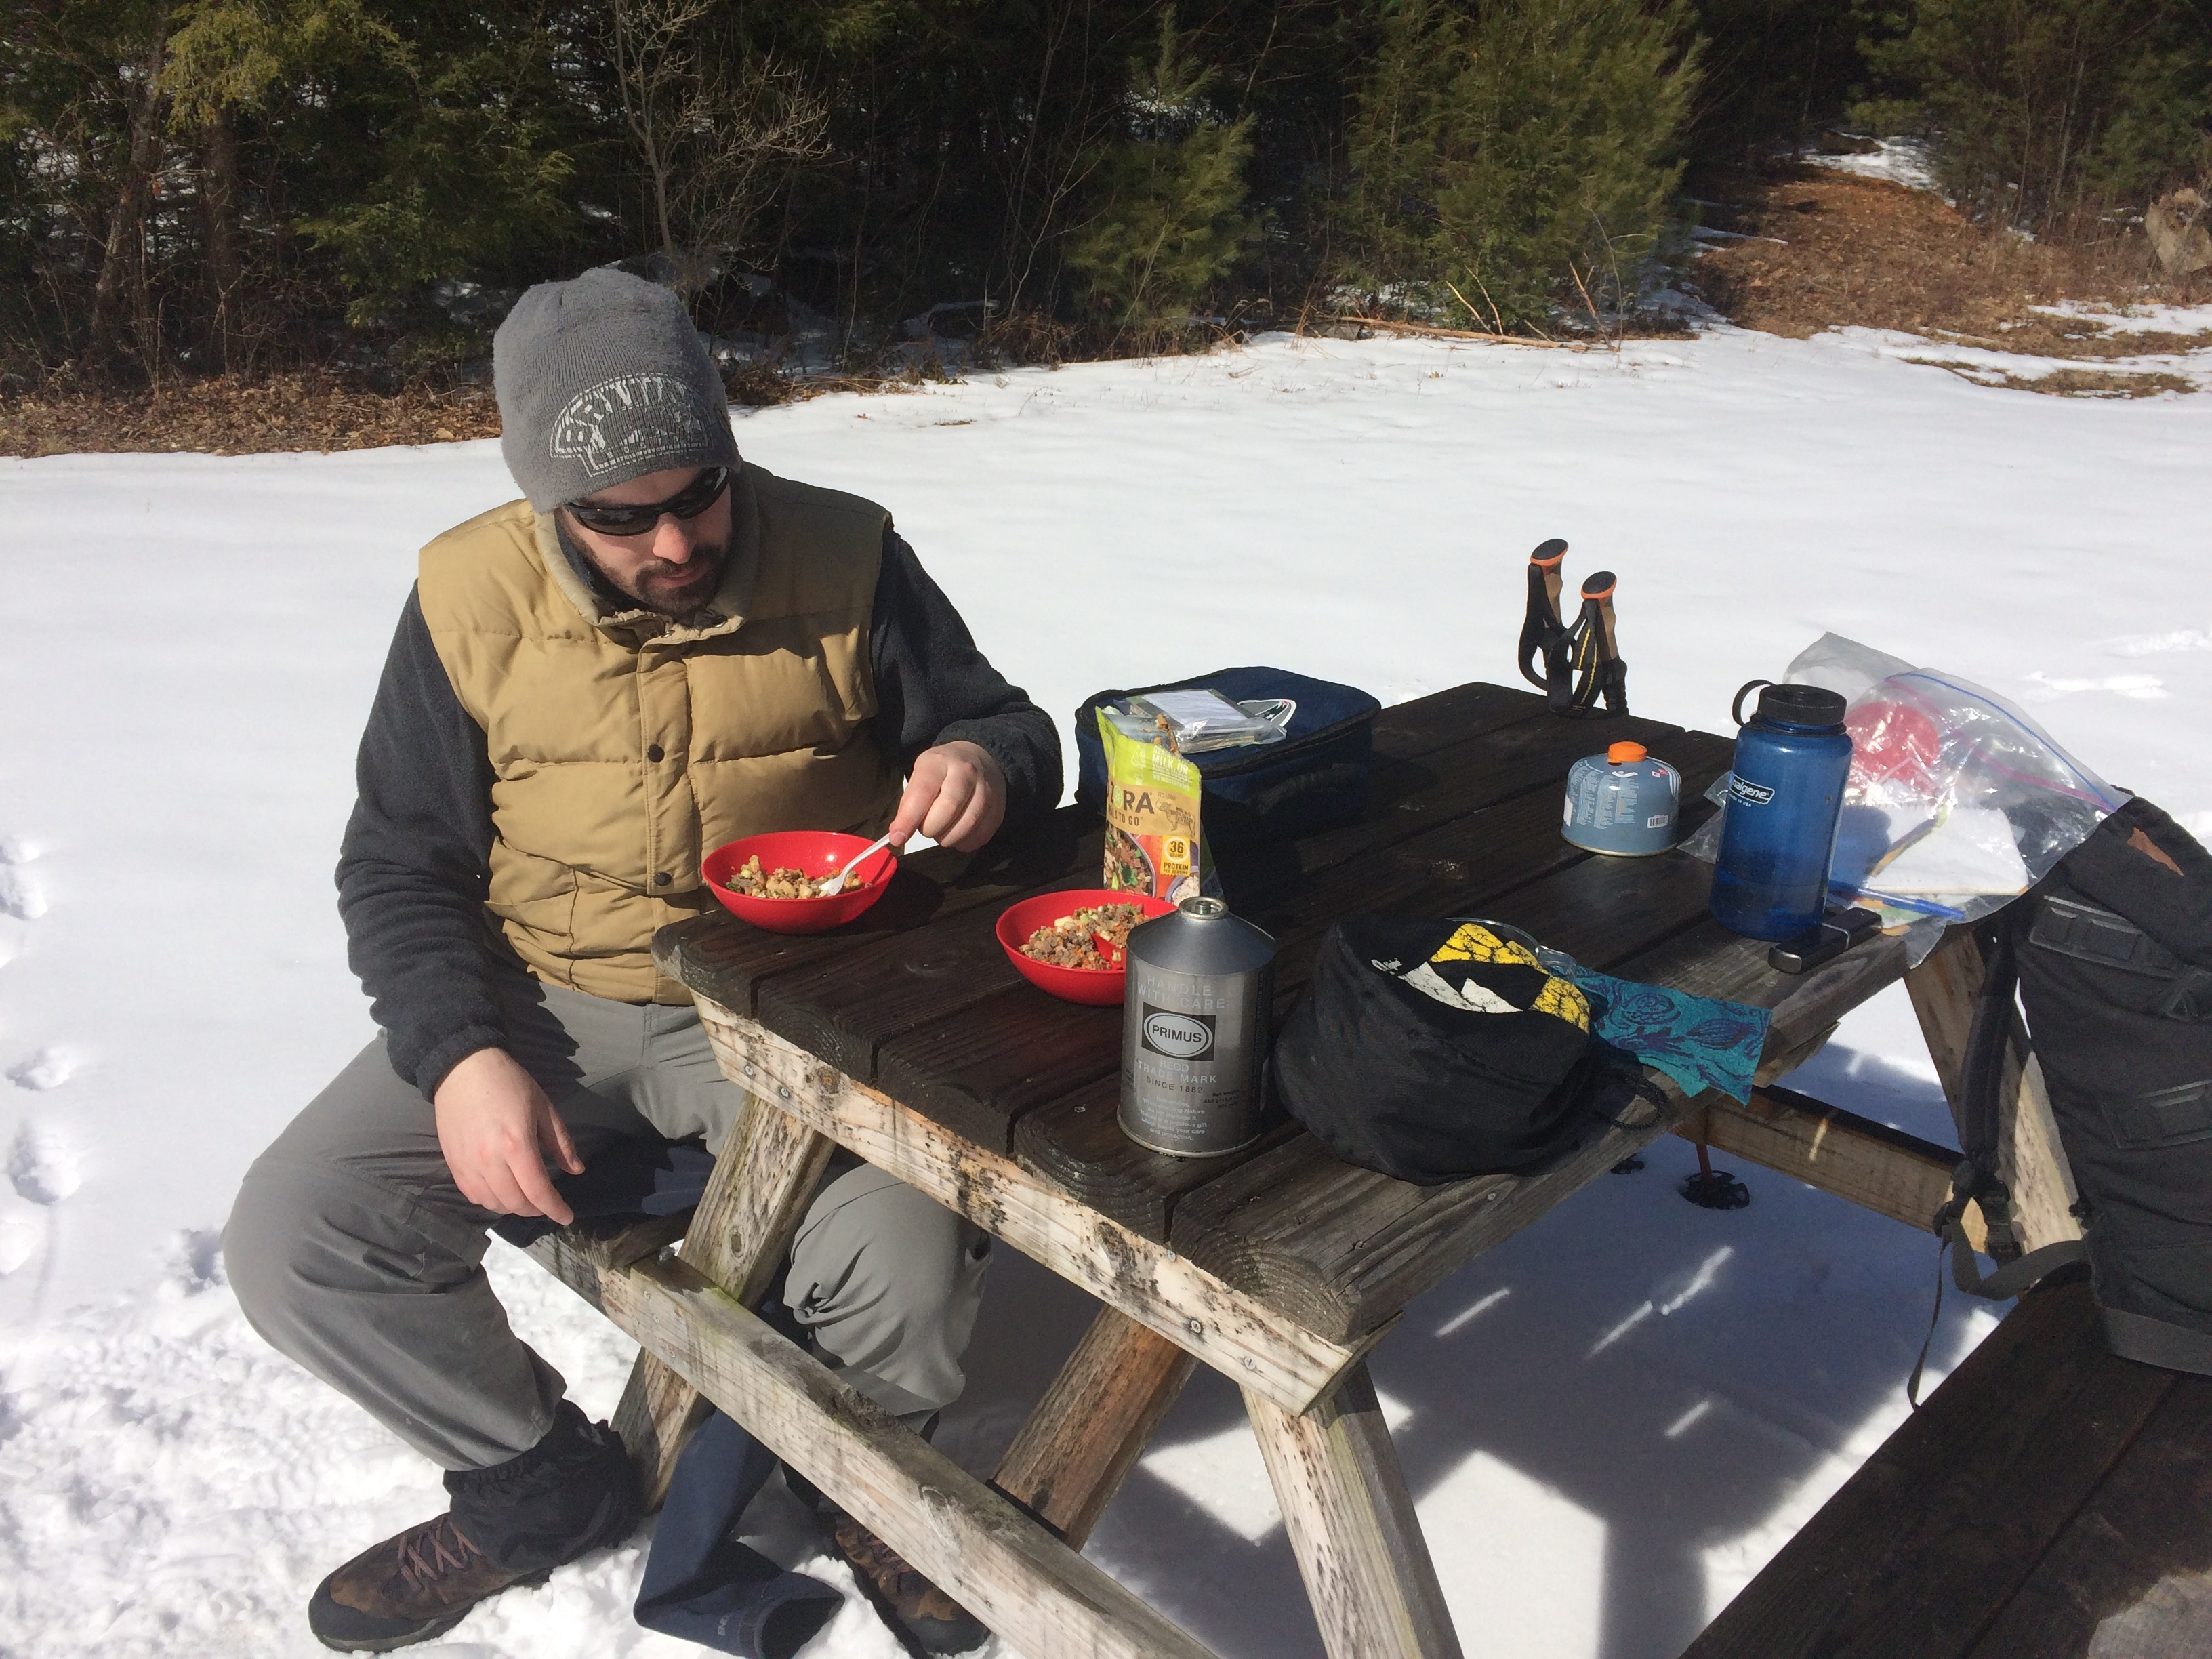 Food Review: Wild Zora Backpacking Meals, Snack Bars